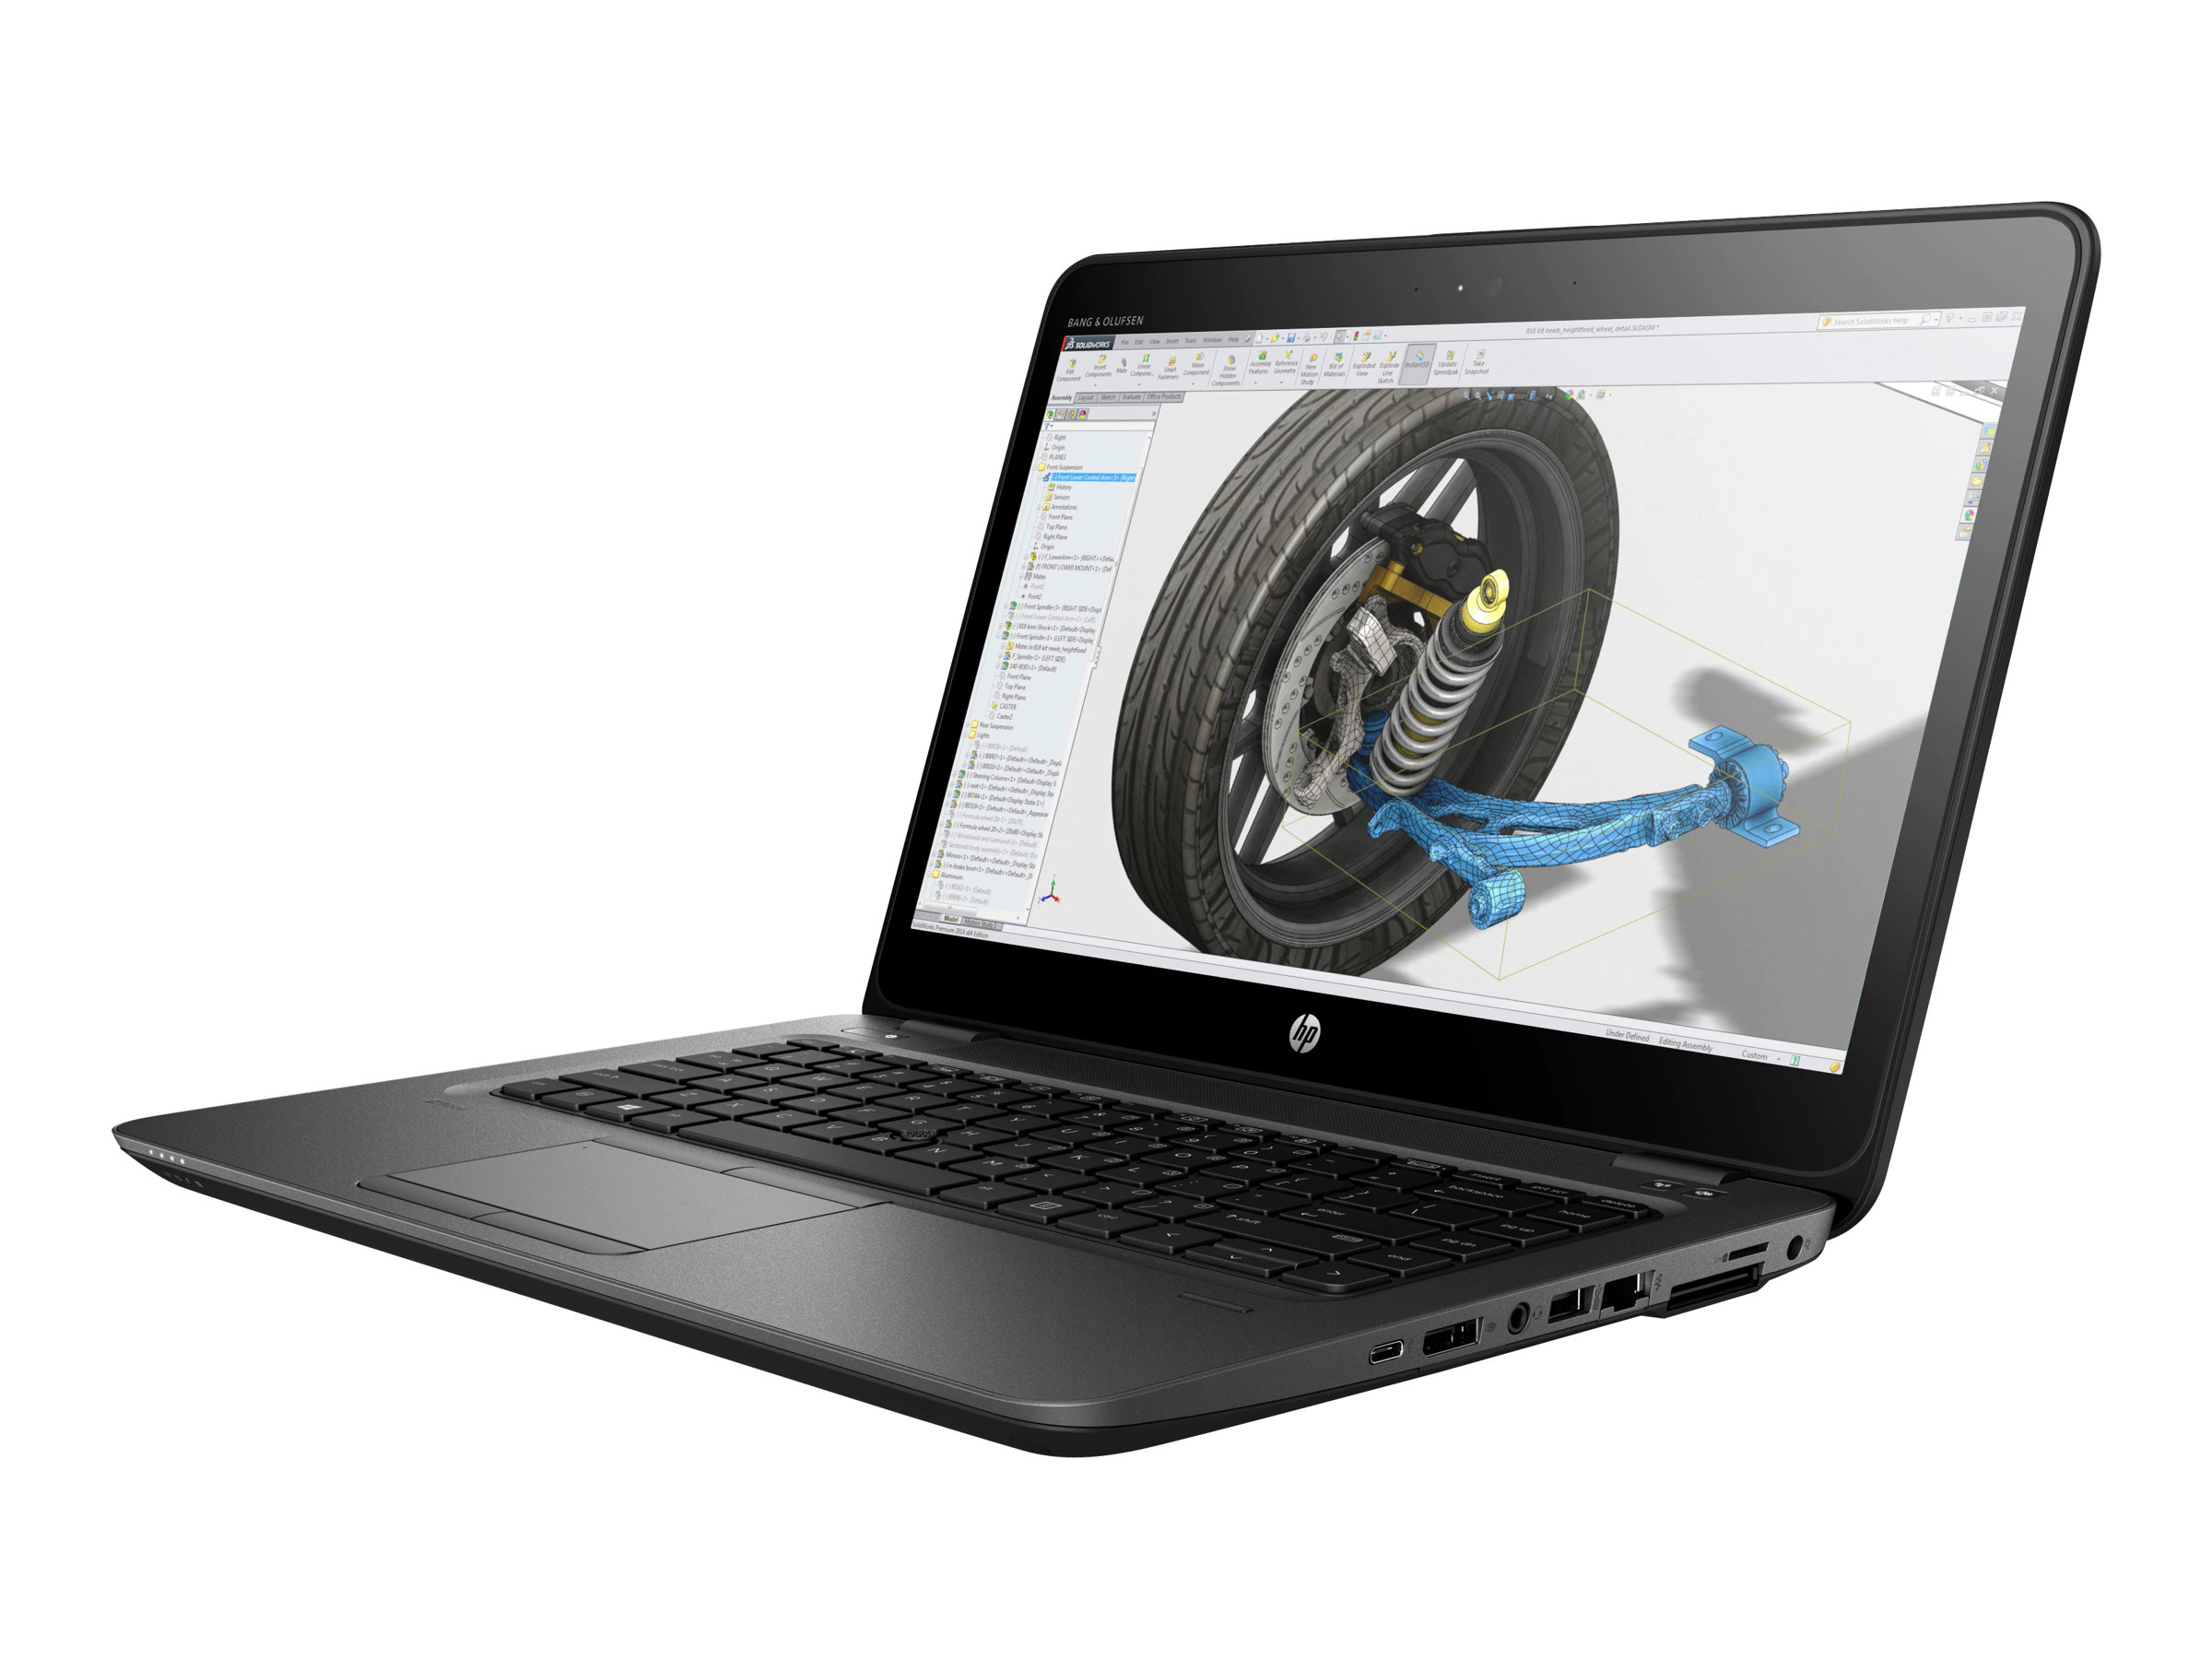 HP ZBook 14u G4 Mobile Workstation - Core i5 7200U / 2.5 GHz - Win 10 Pro 64-Bit - 8 GB RAM - 500 GB HDD - 35.6 cm (14